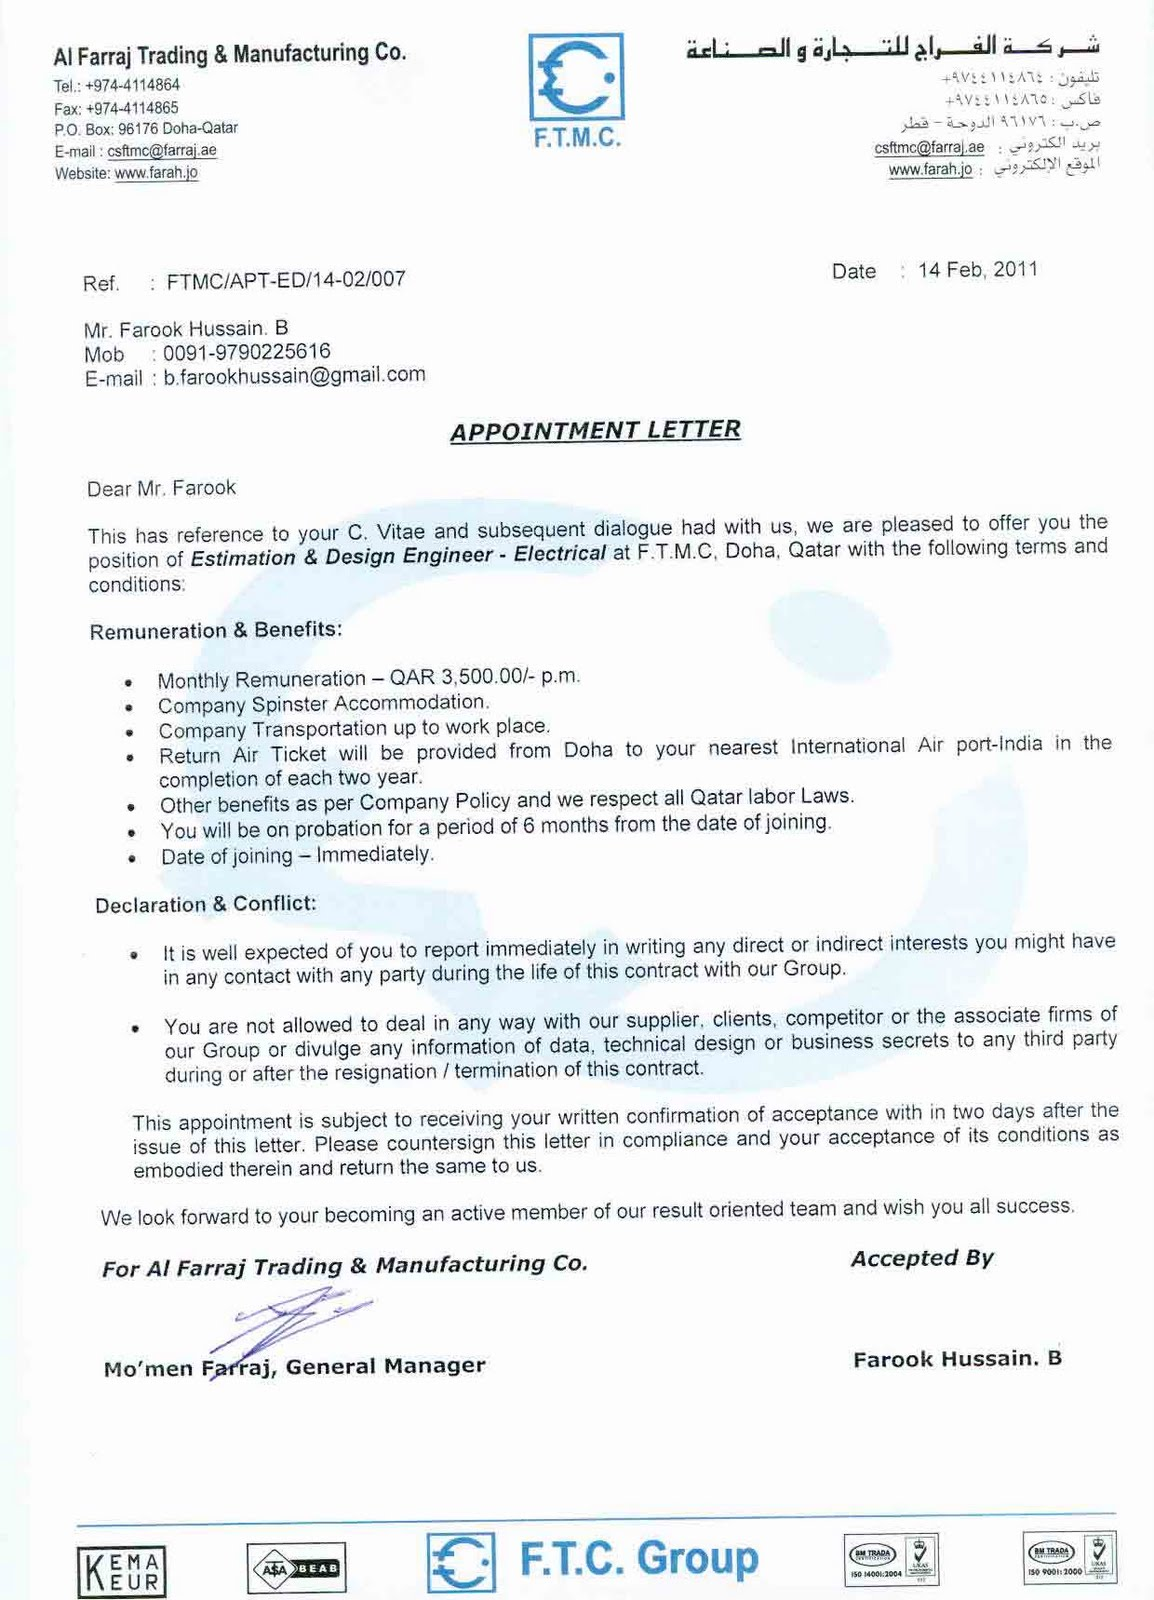 Qatar Appointment Letter] appointment confirmation letter ...